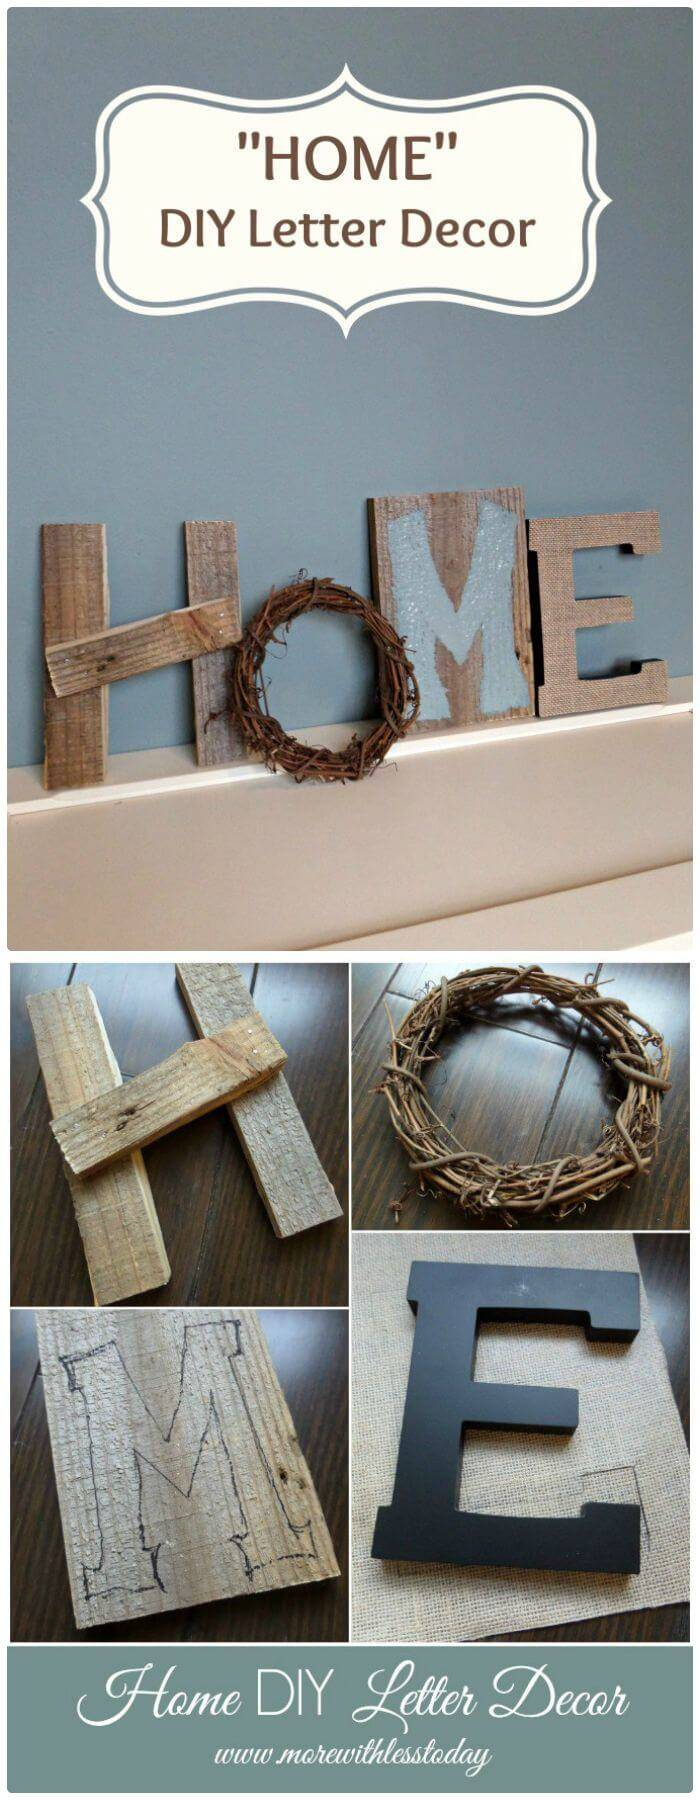 How To DIY Letter Decor - Home Decor Step By Step Instructions